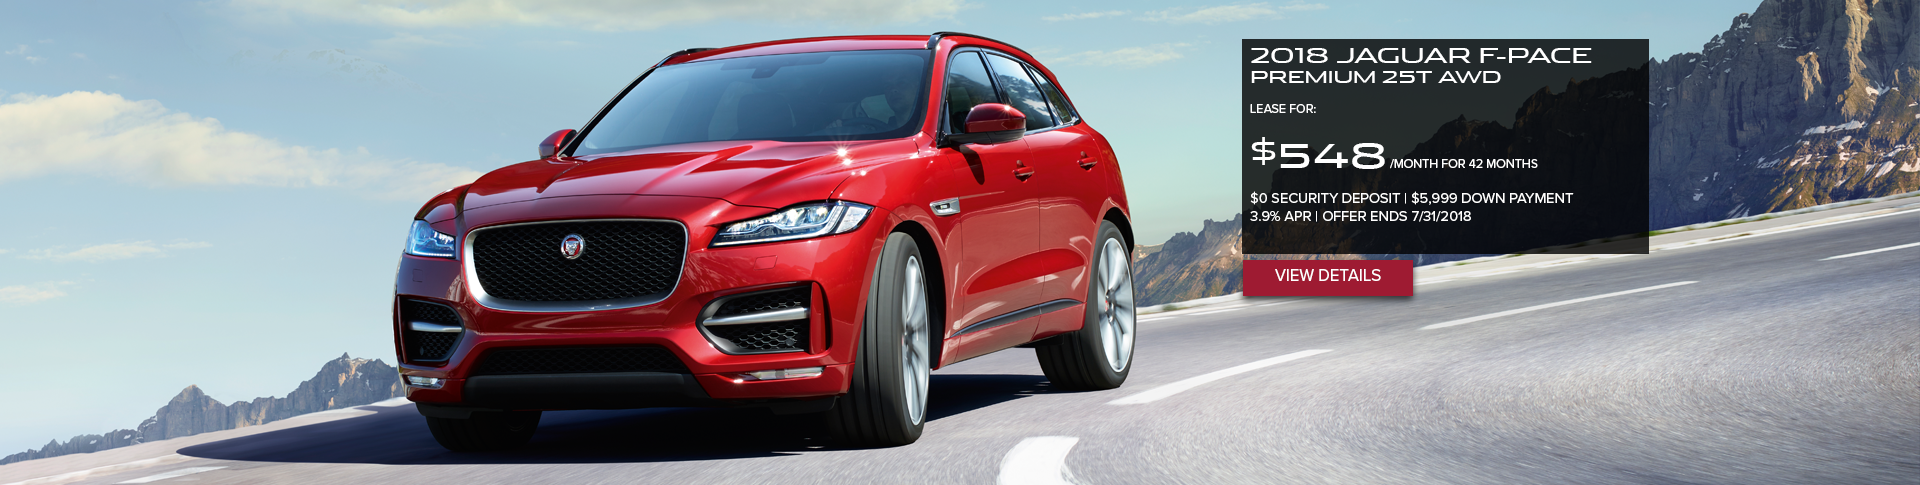 July 2018 F-PACE Offer